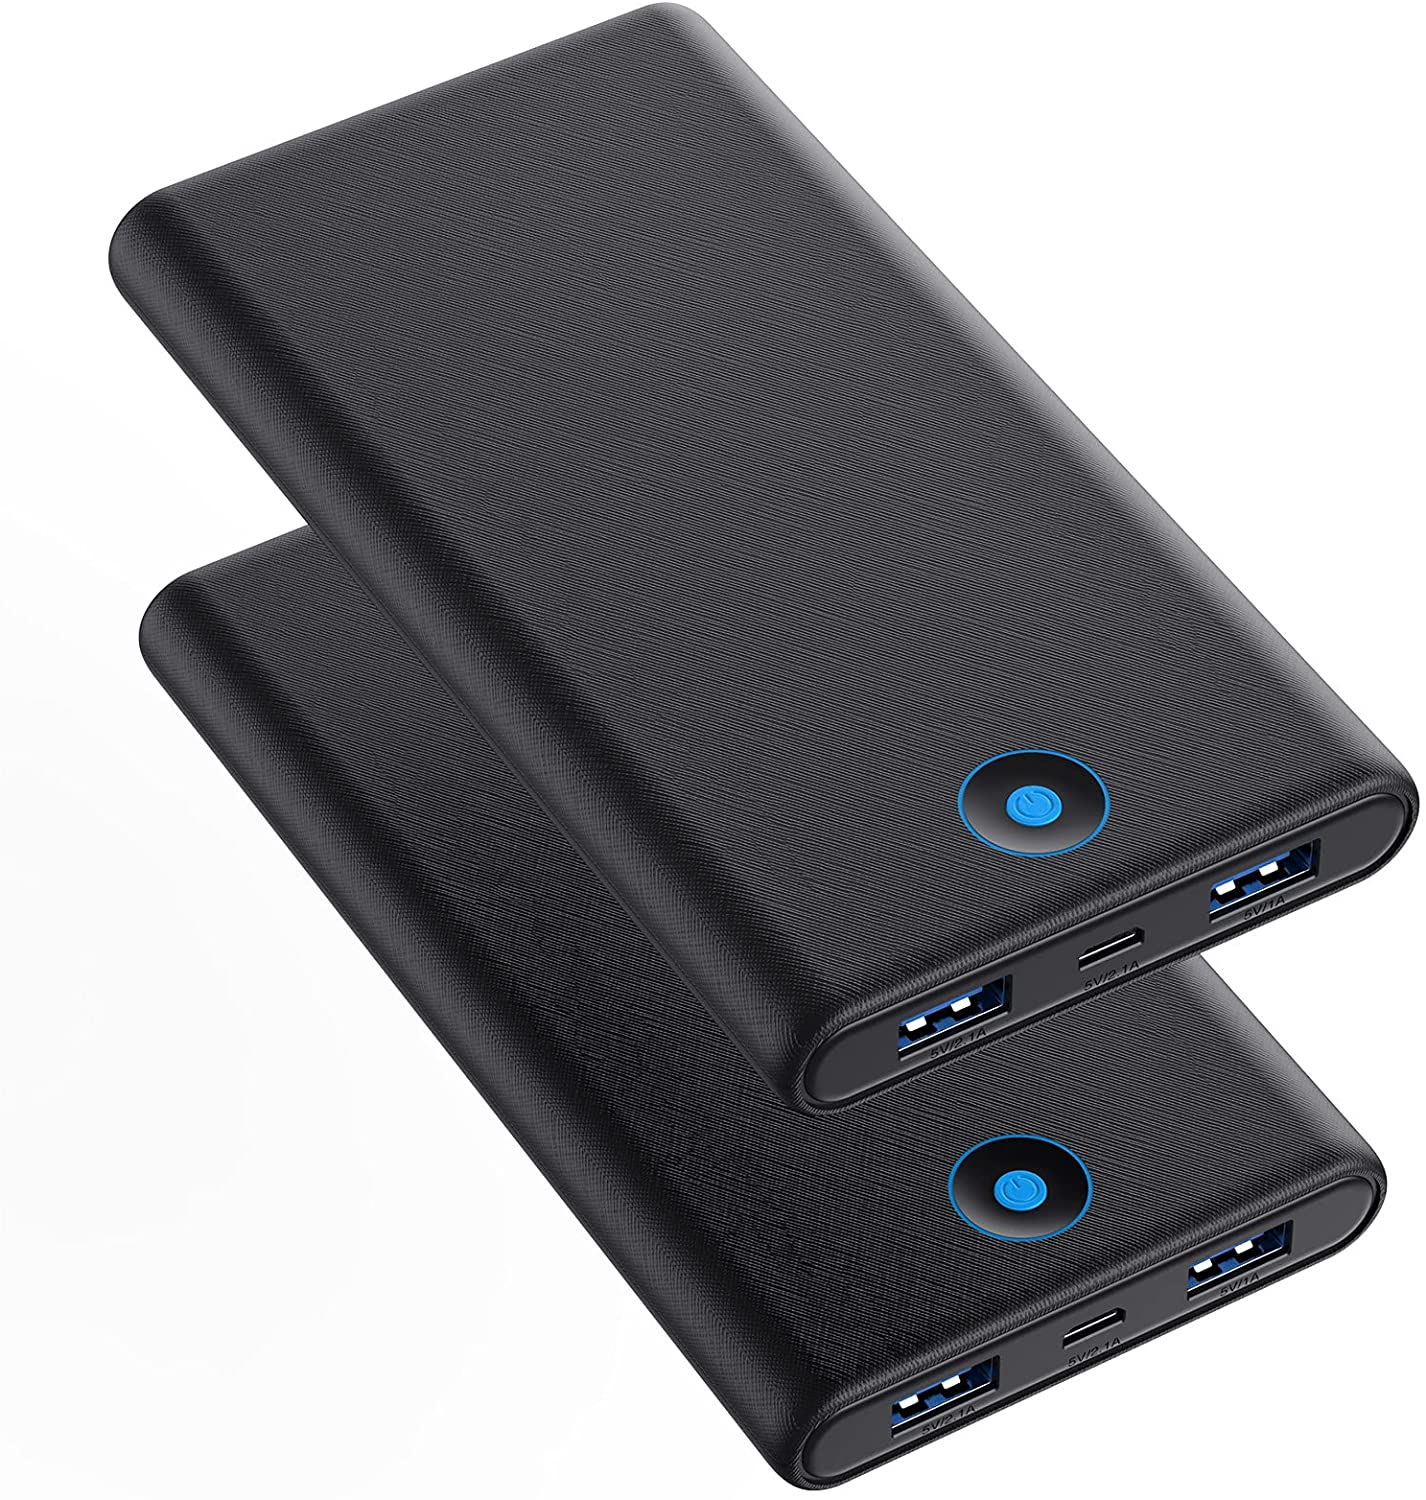 Portable Charger, 2-Pack 20000mAh Power Bank Ultra Slim Fast Charging External Battery Pack with Dual USB Outputs Compatible with iPhone 12 Pro/12/11/XR/X, Samsung S20, iPad Tablet etc.